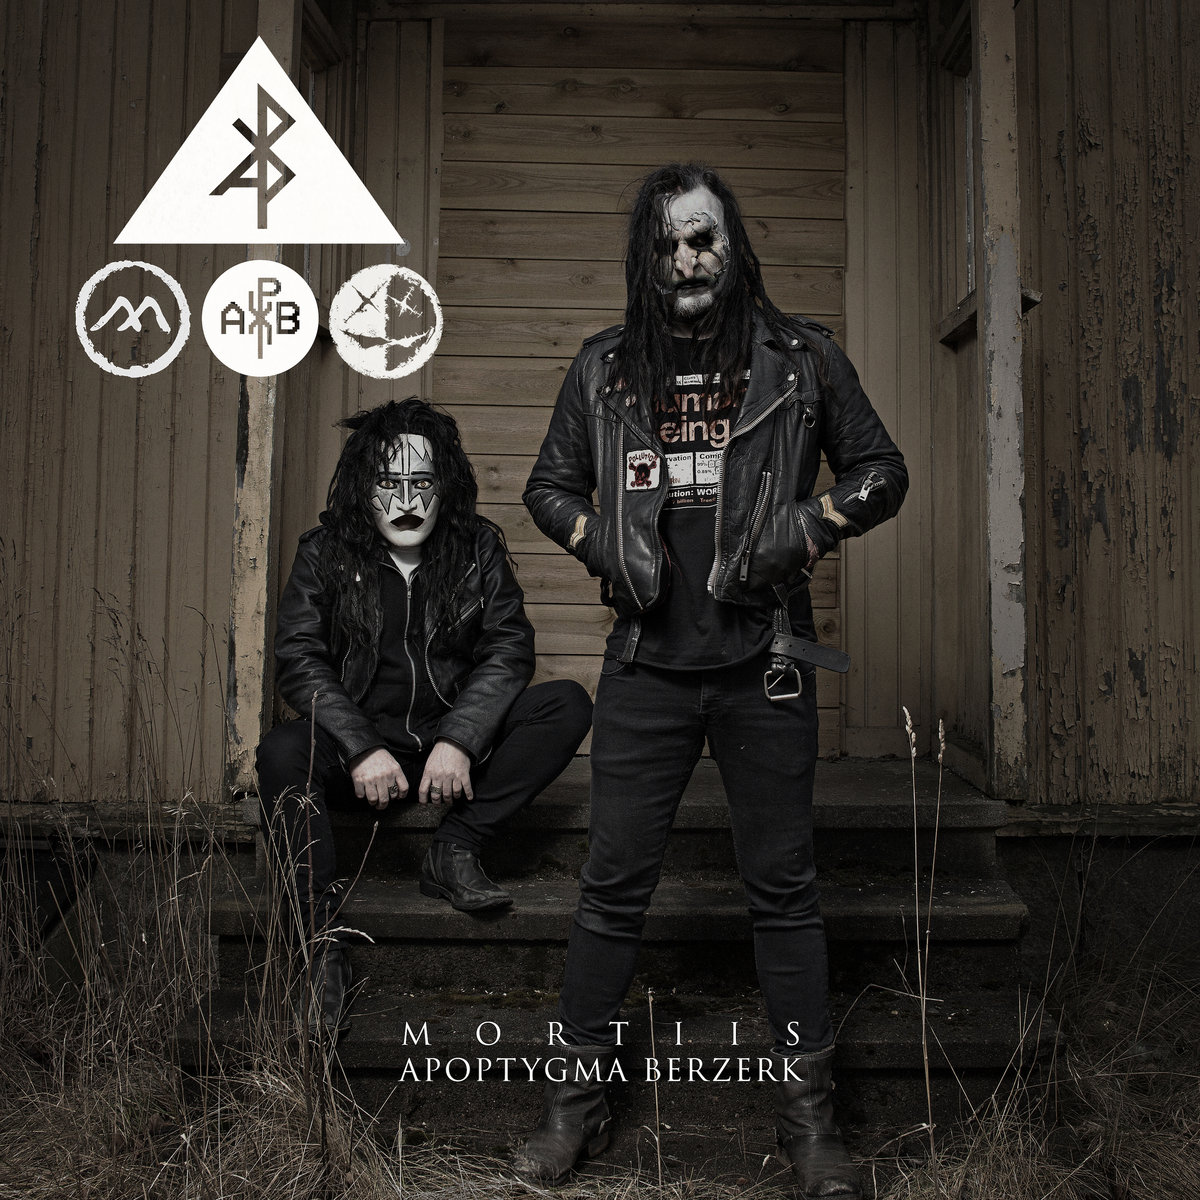 mortiis apop news